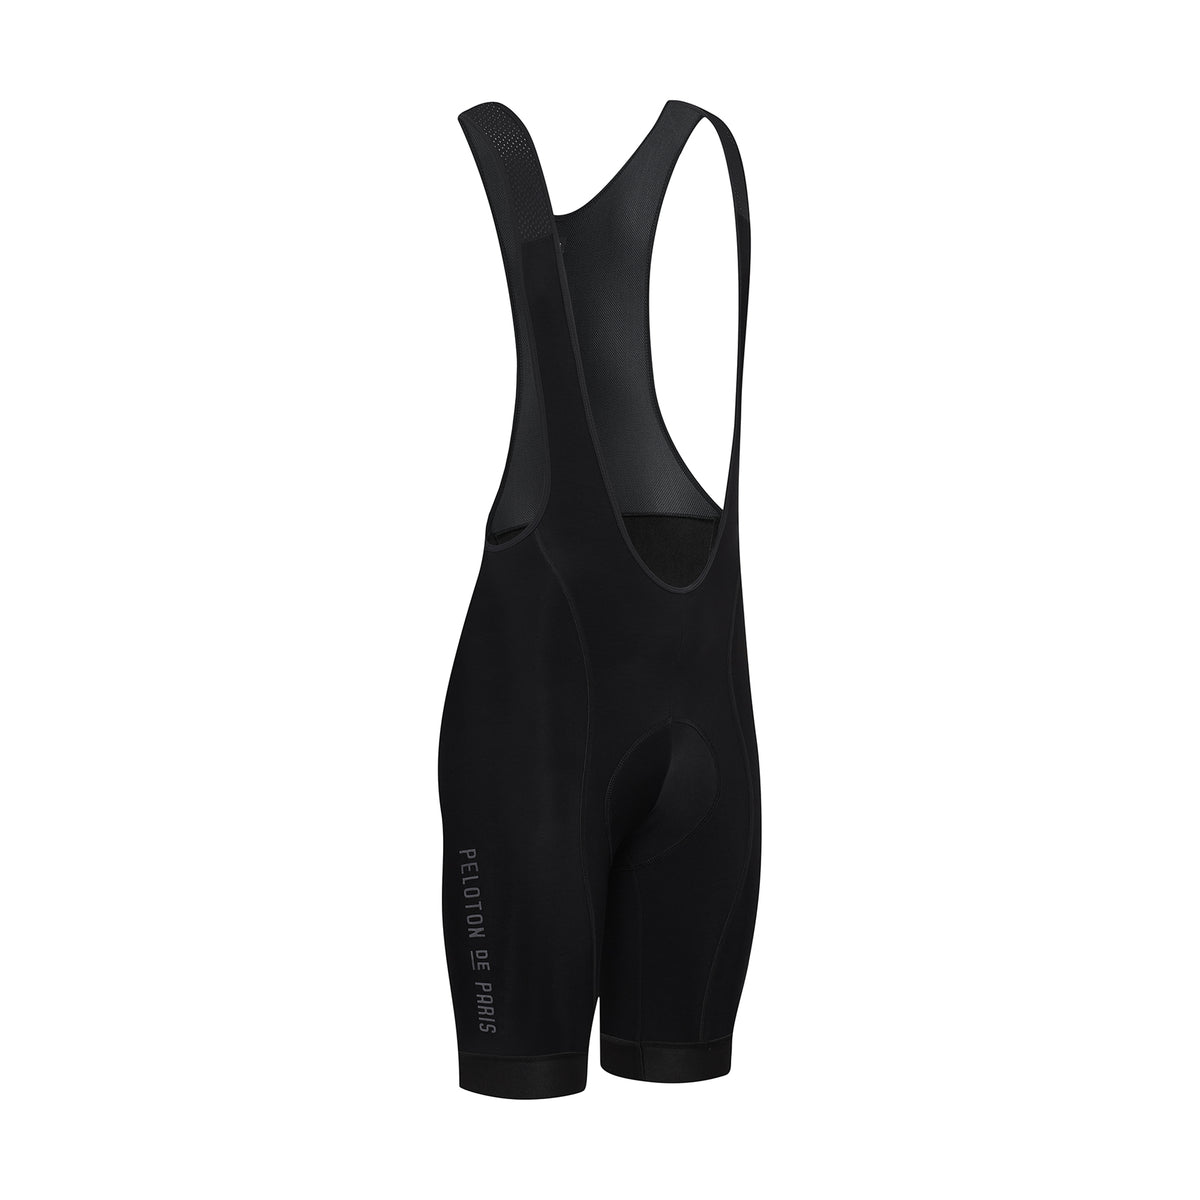 Domestique Black Winter Bib Shorts